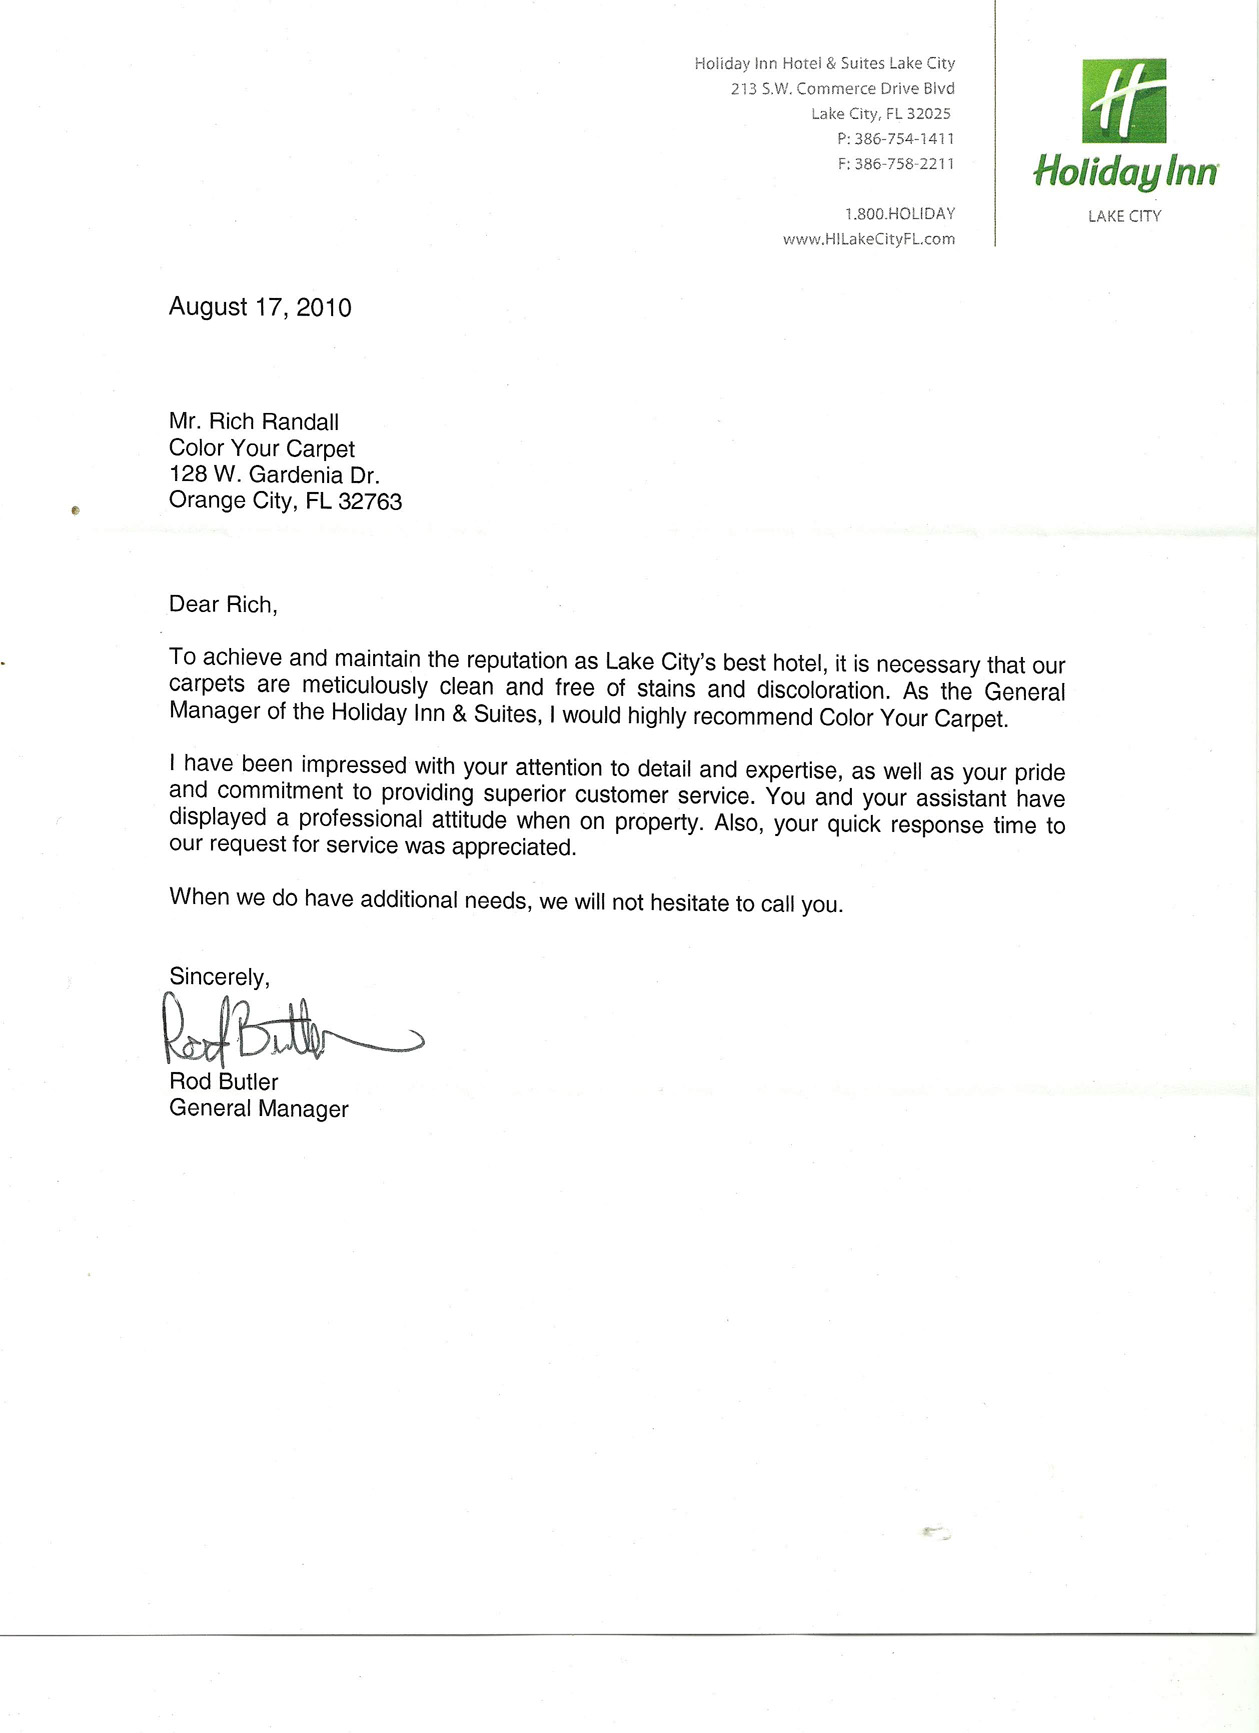 Color Your Carpet   Carpet Dyeing Expert  Holiday Inn Gm Letter